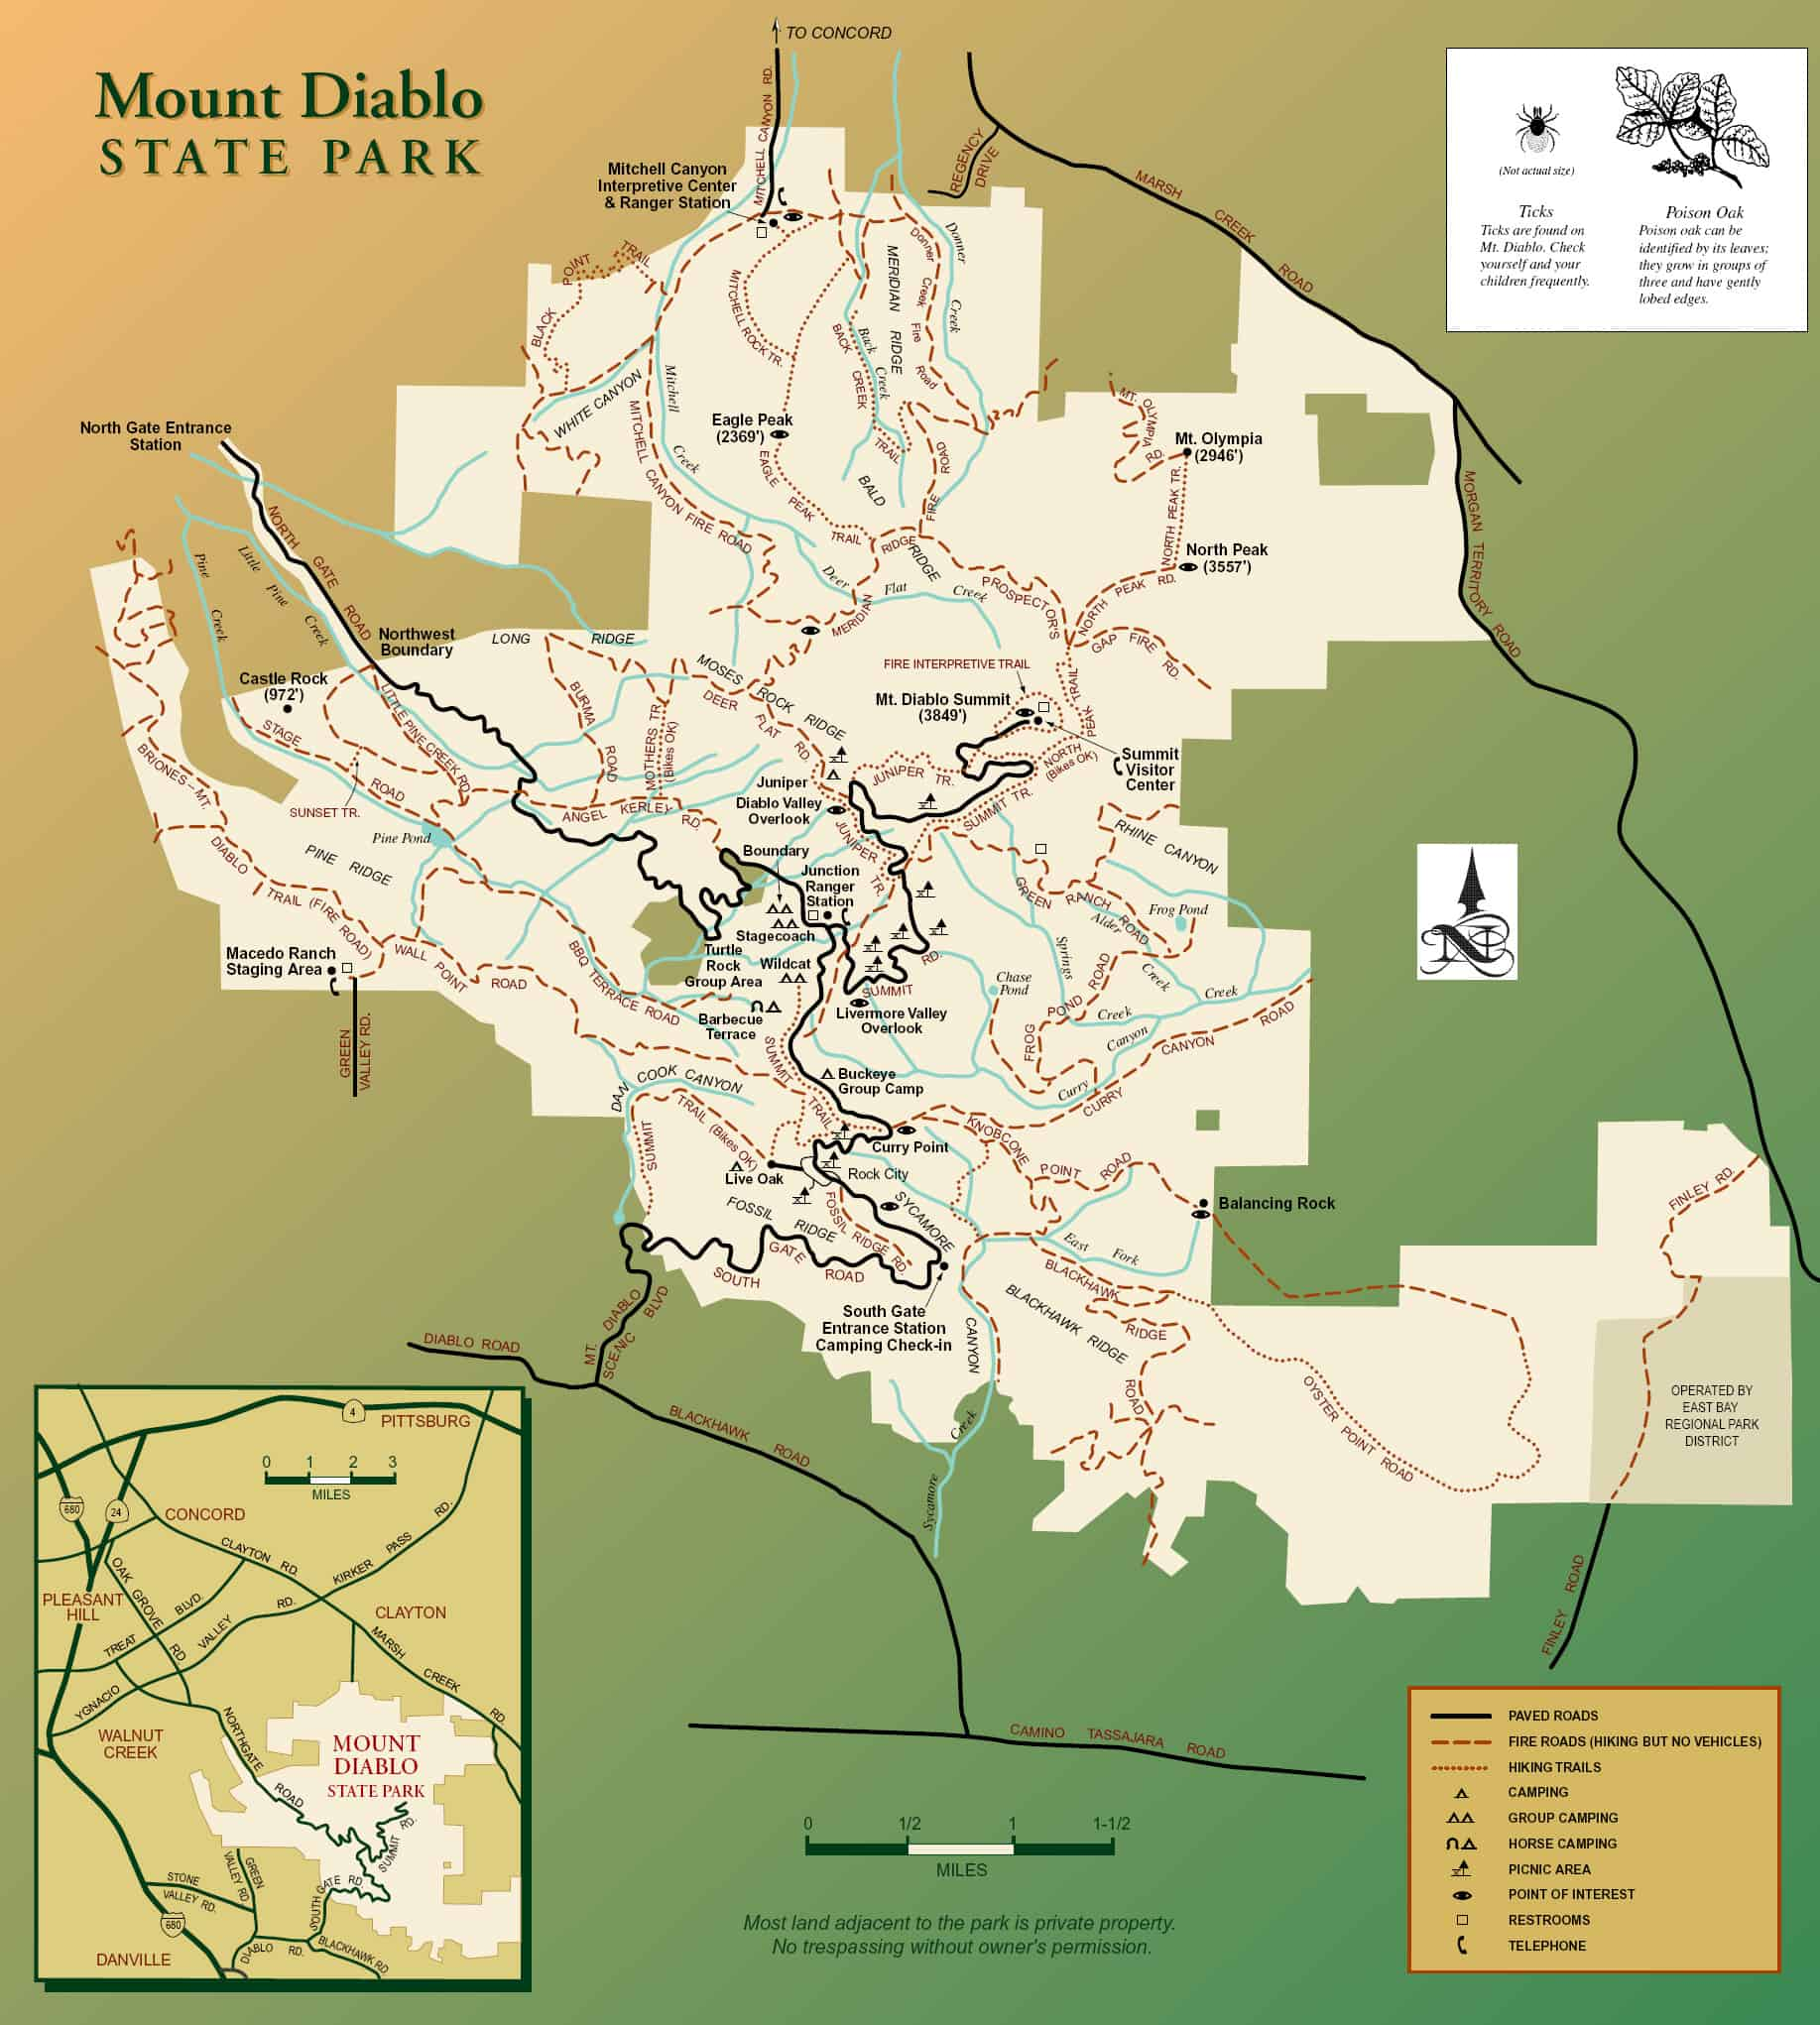 south mountain state park trail map with North Peak At Mt Diablo State Park Ca on North Peak At Mt Diablo State Park Ca also Badlands l furthermore Rocky Mountain National Park Mt Ida likewise Chattahoochee River Trails Atlanta Top 10 besides 7305.